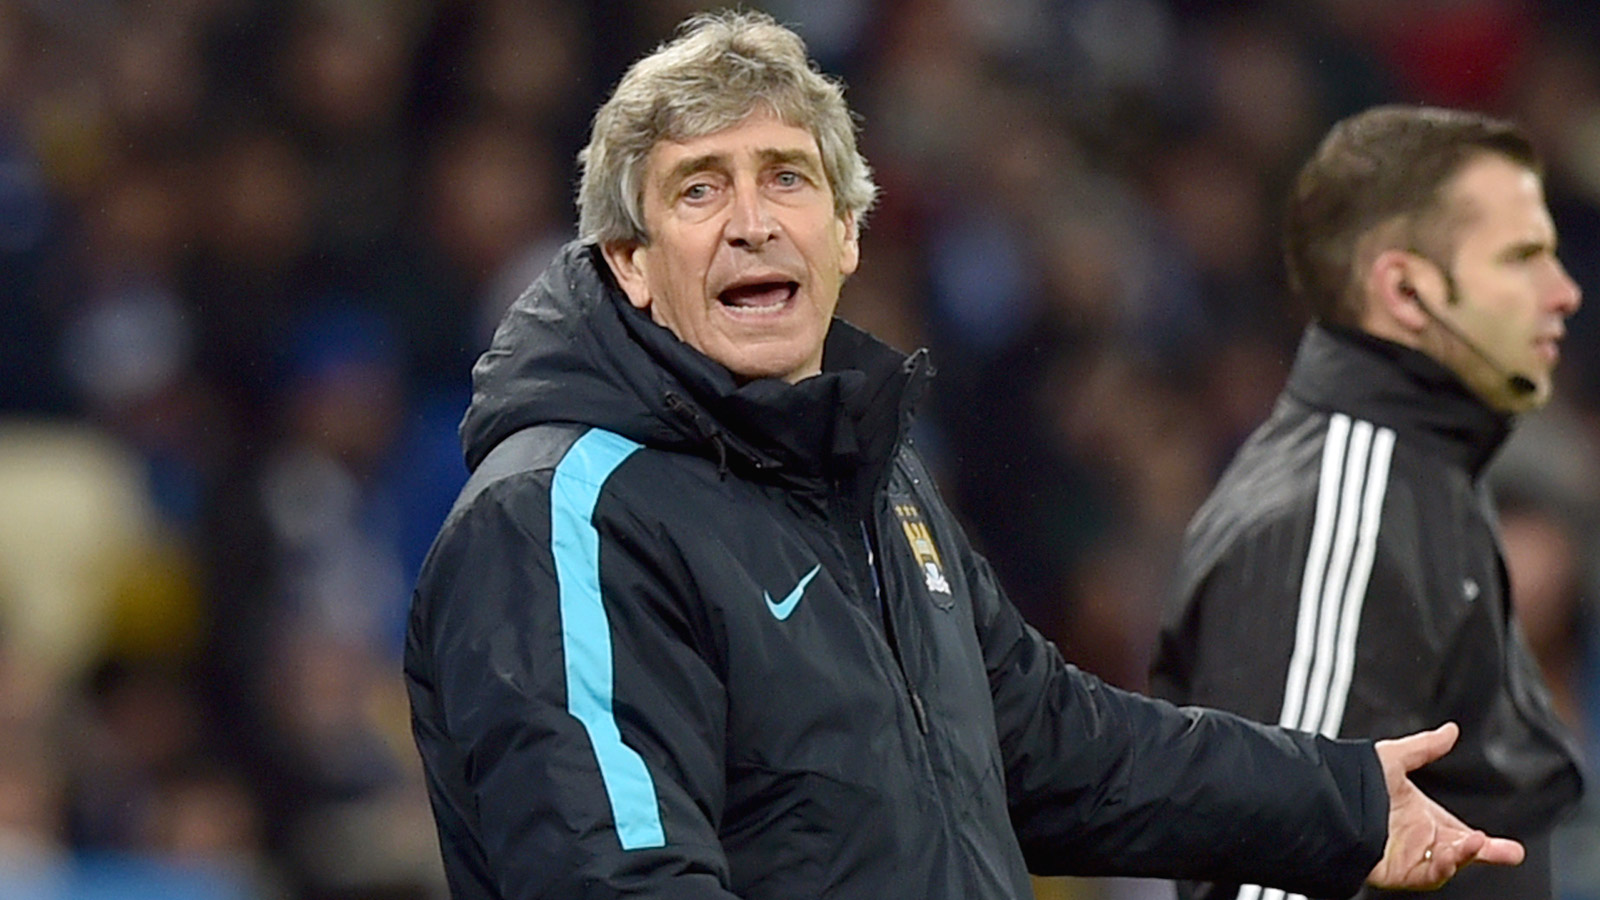 Pellegrini insists City still have work to do after UCL win